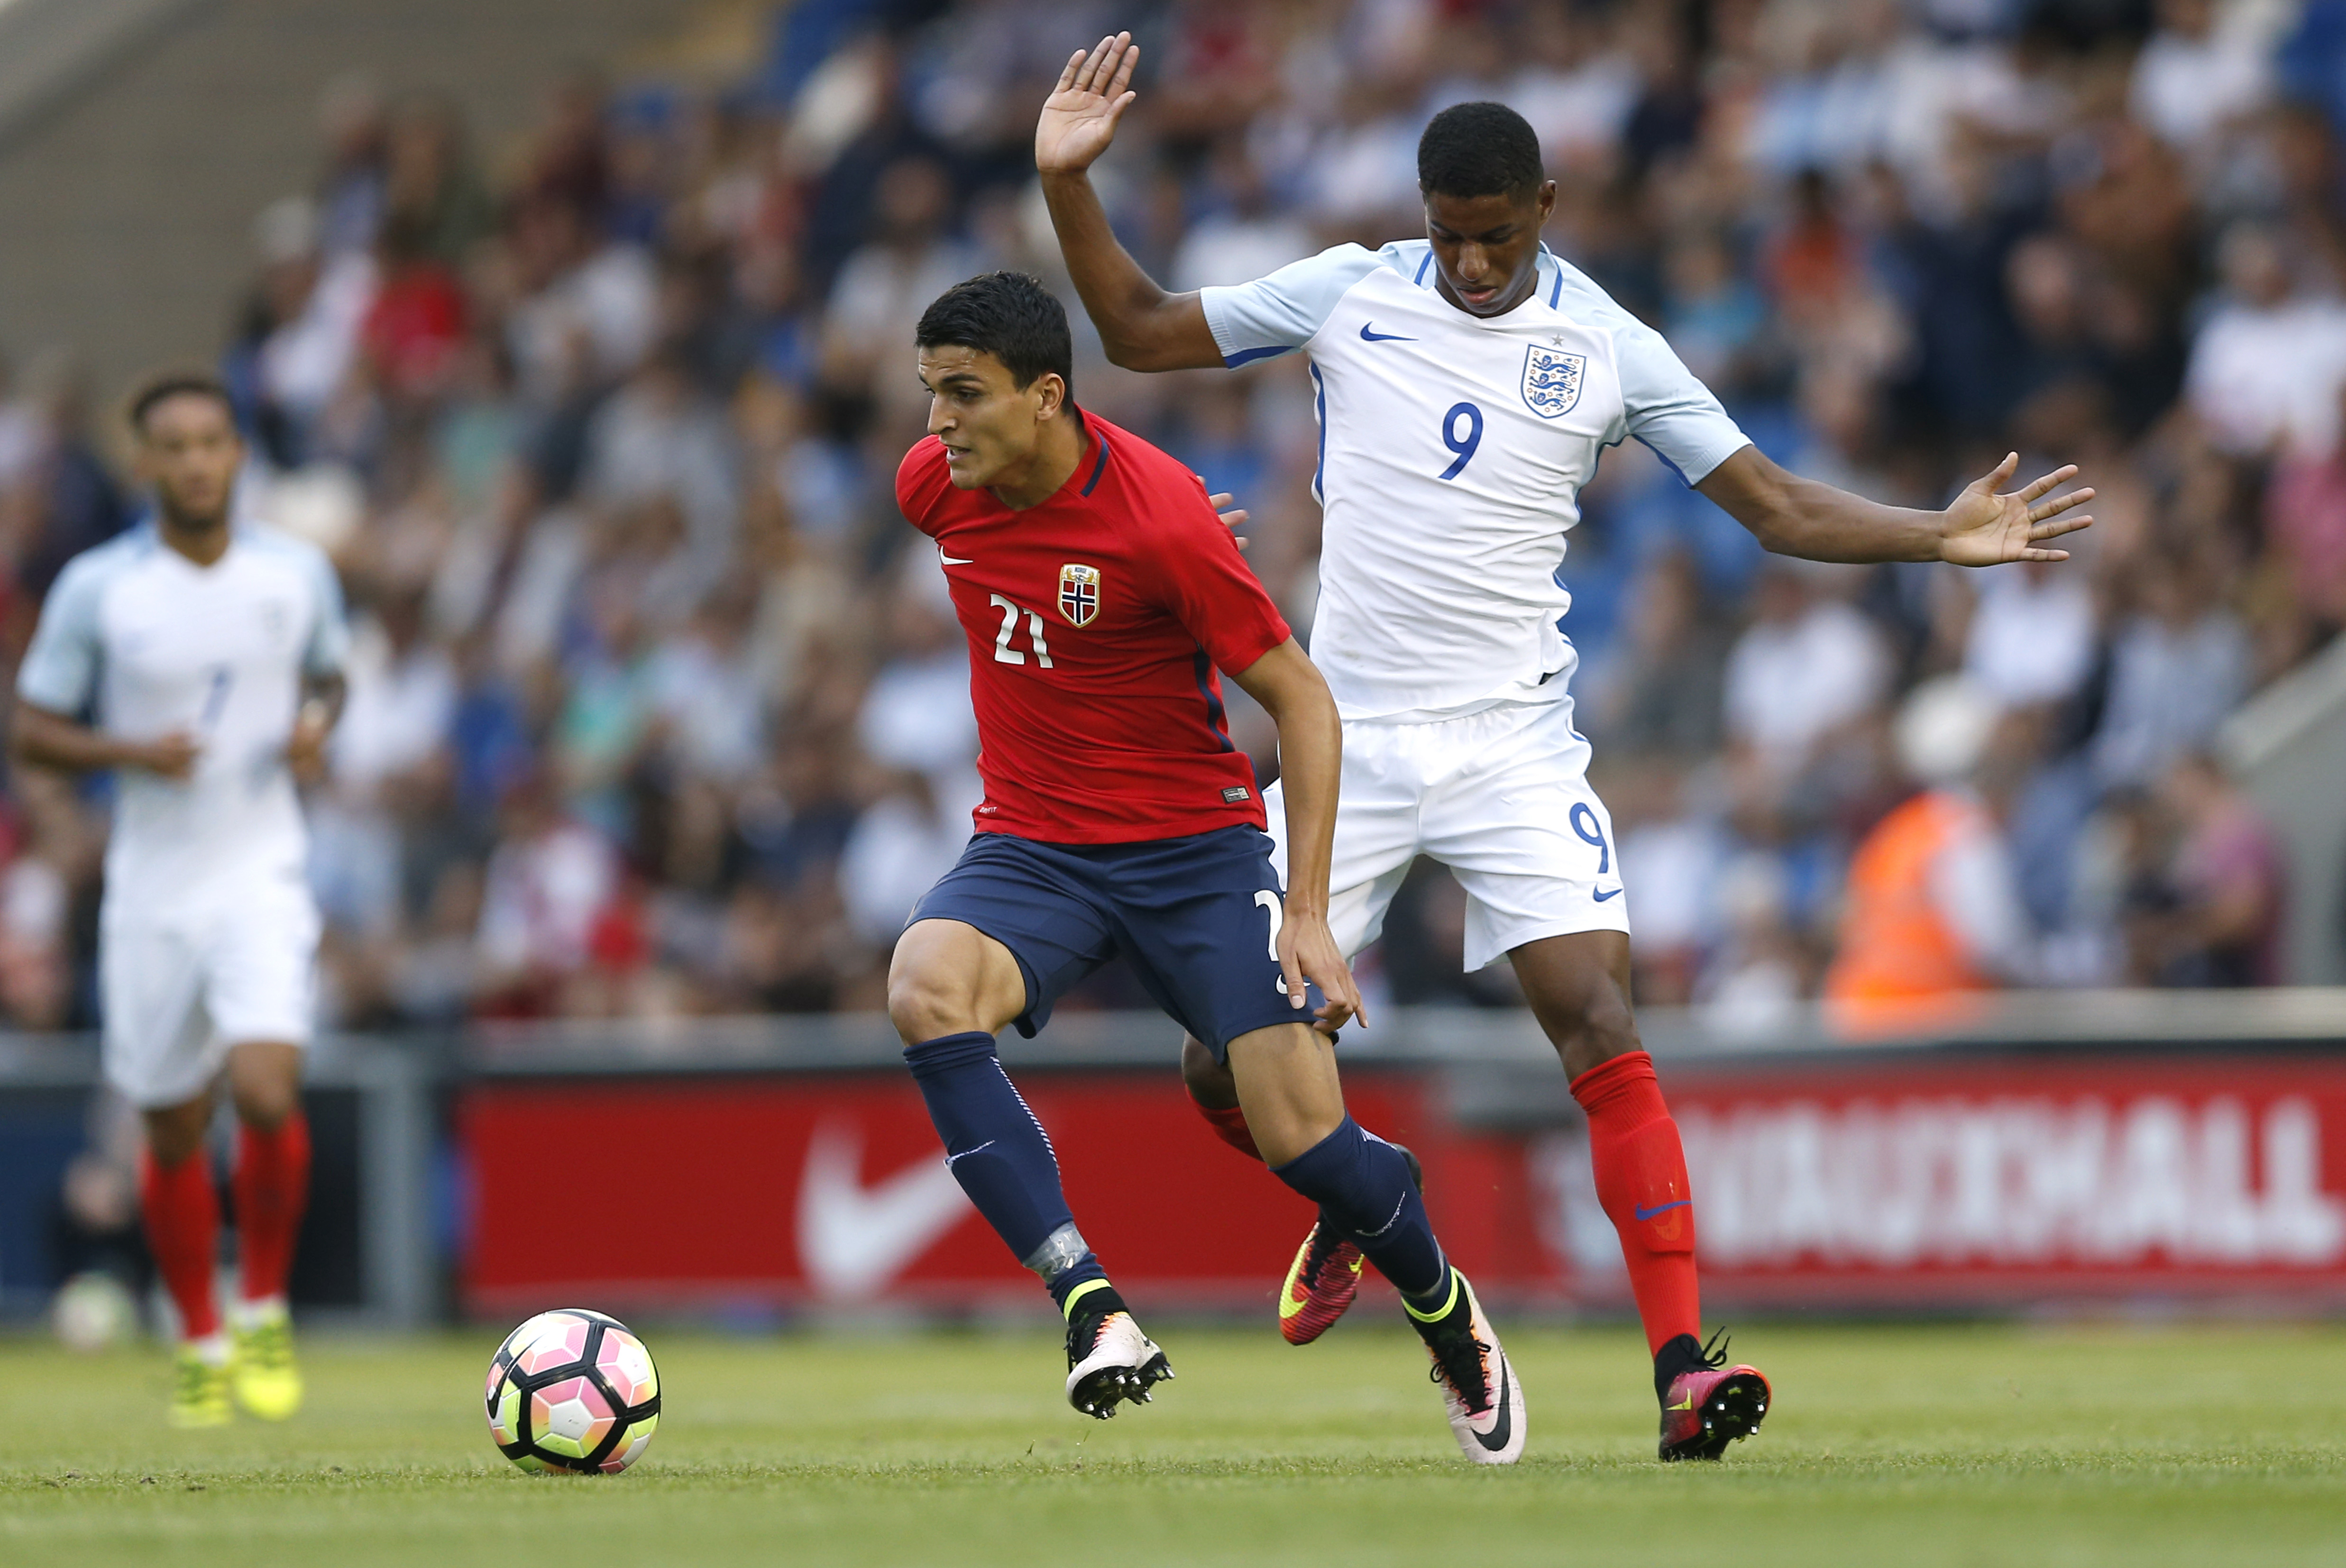 Britain Football Soccer - England v Norway - UEFA European Under 21 Championship Qualifying Group Nine - Weston Homes Community Stadium - 6/9/16 England's Marcus Rashford in action with Norway's Mohamed Elyounoussi Action Images via Reuters / Matthew Childs Livepic EDITORIAL USE ONLY.